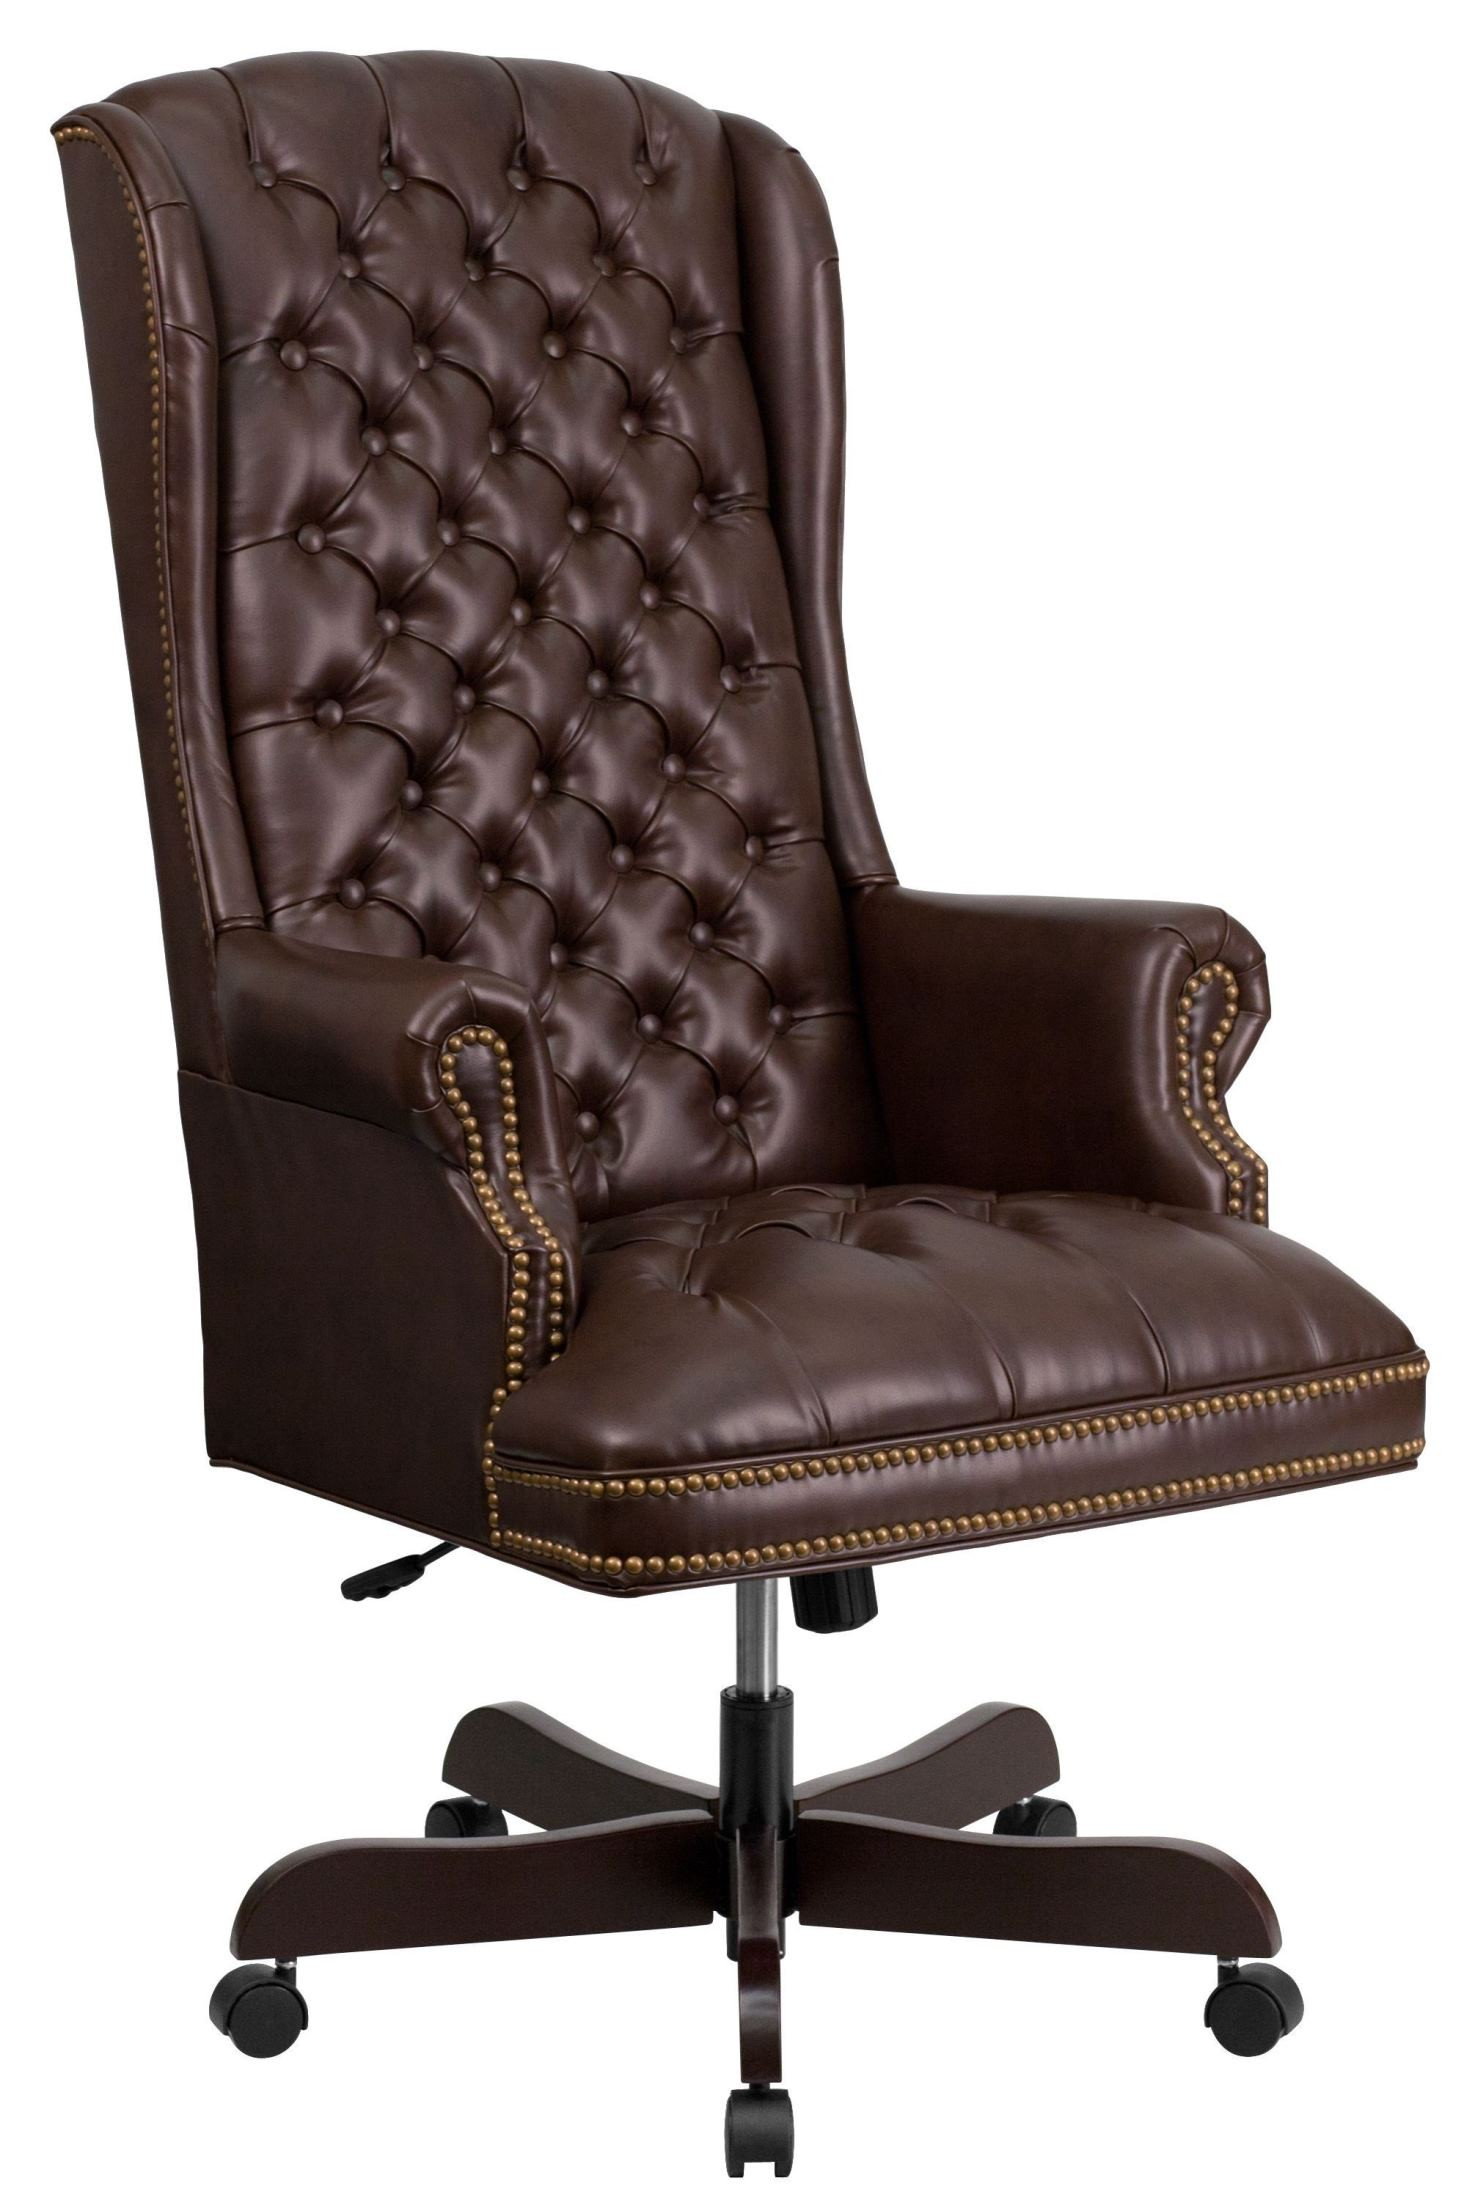 Brown Leather Office Chairs 360 Brn High Back Tufted Brown Leather Executive Office